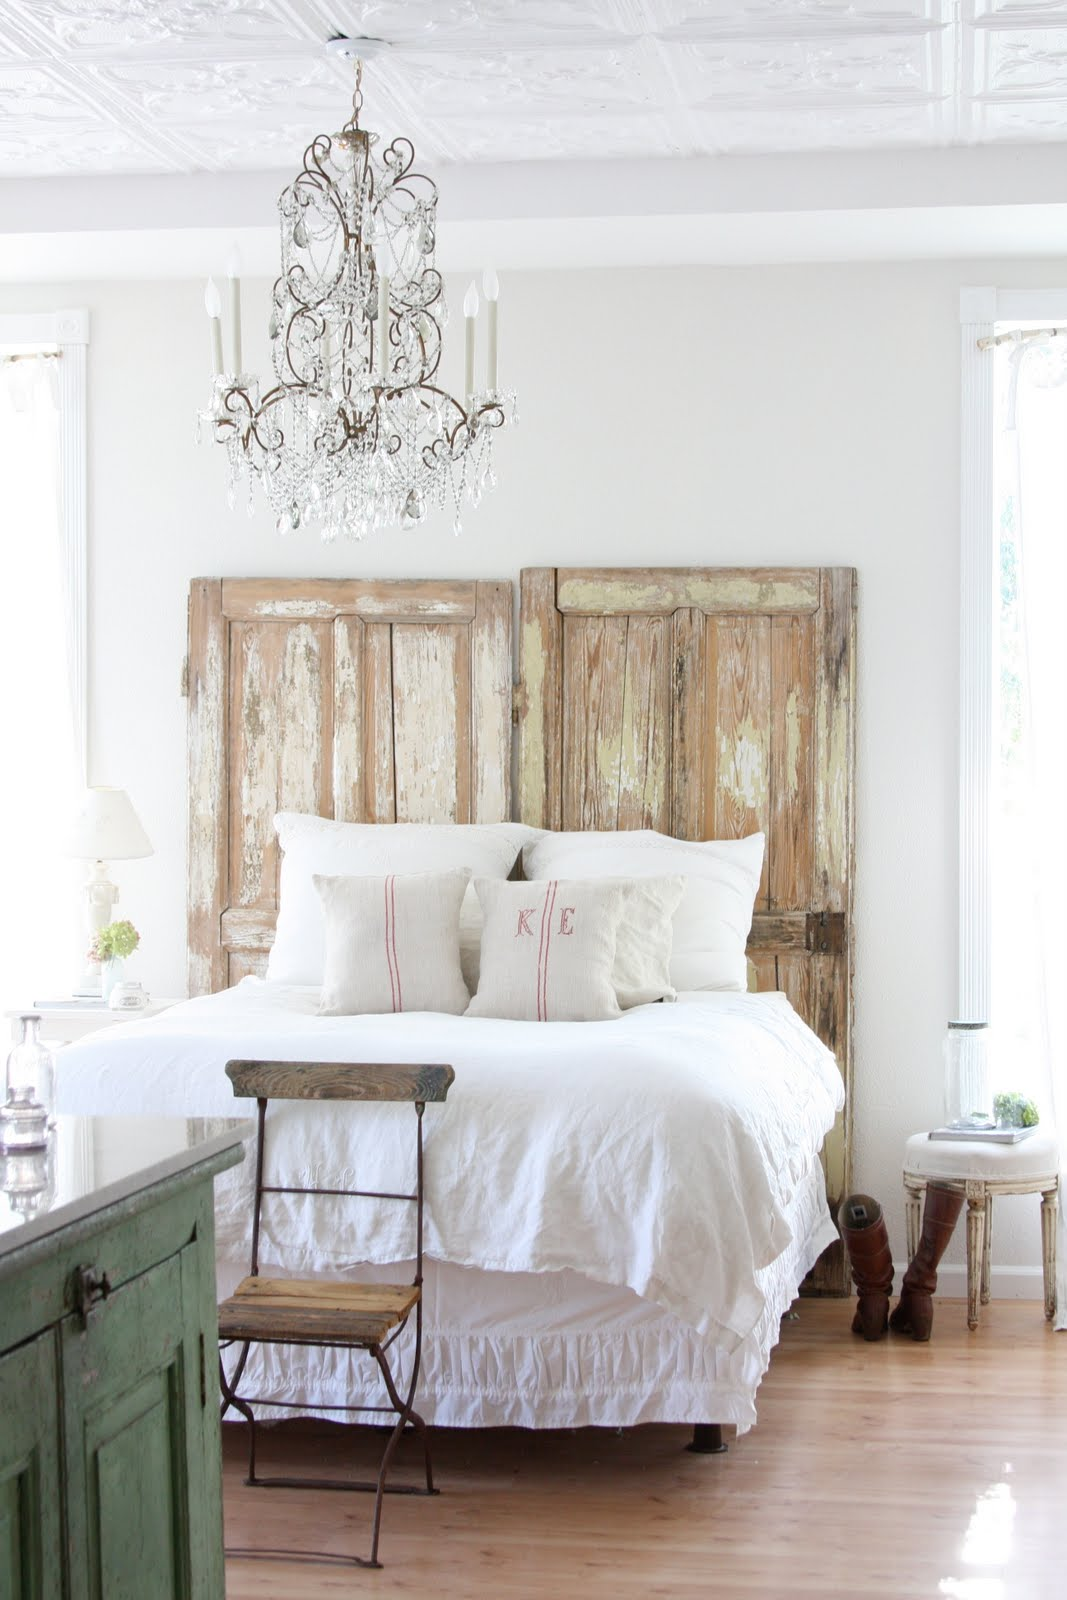 Reclaimed old doors bohemian style - 34 DIY Headboard Ideas